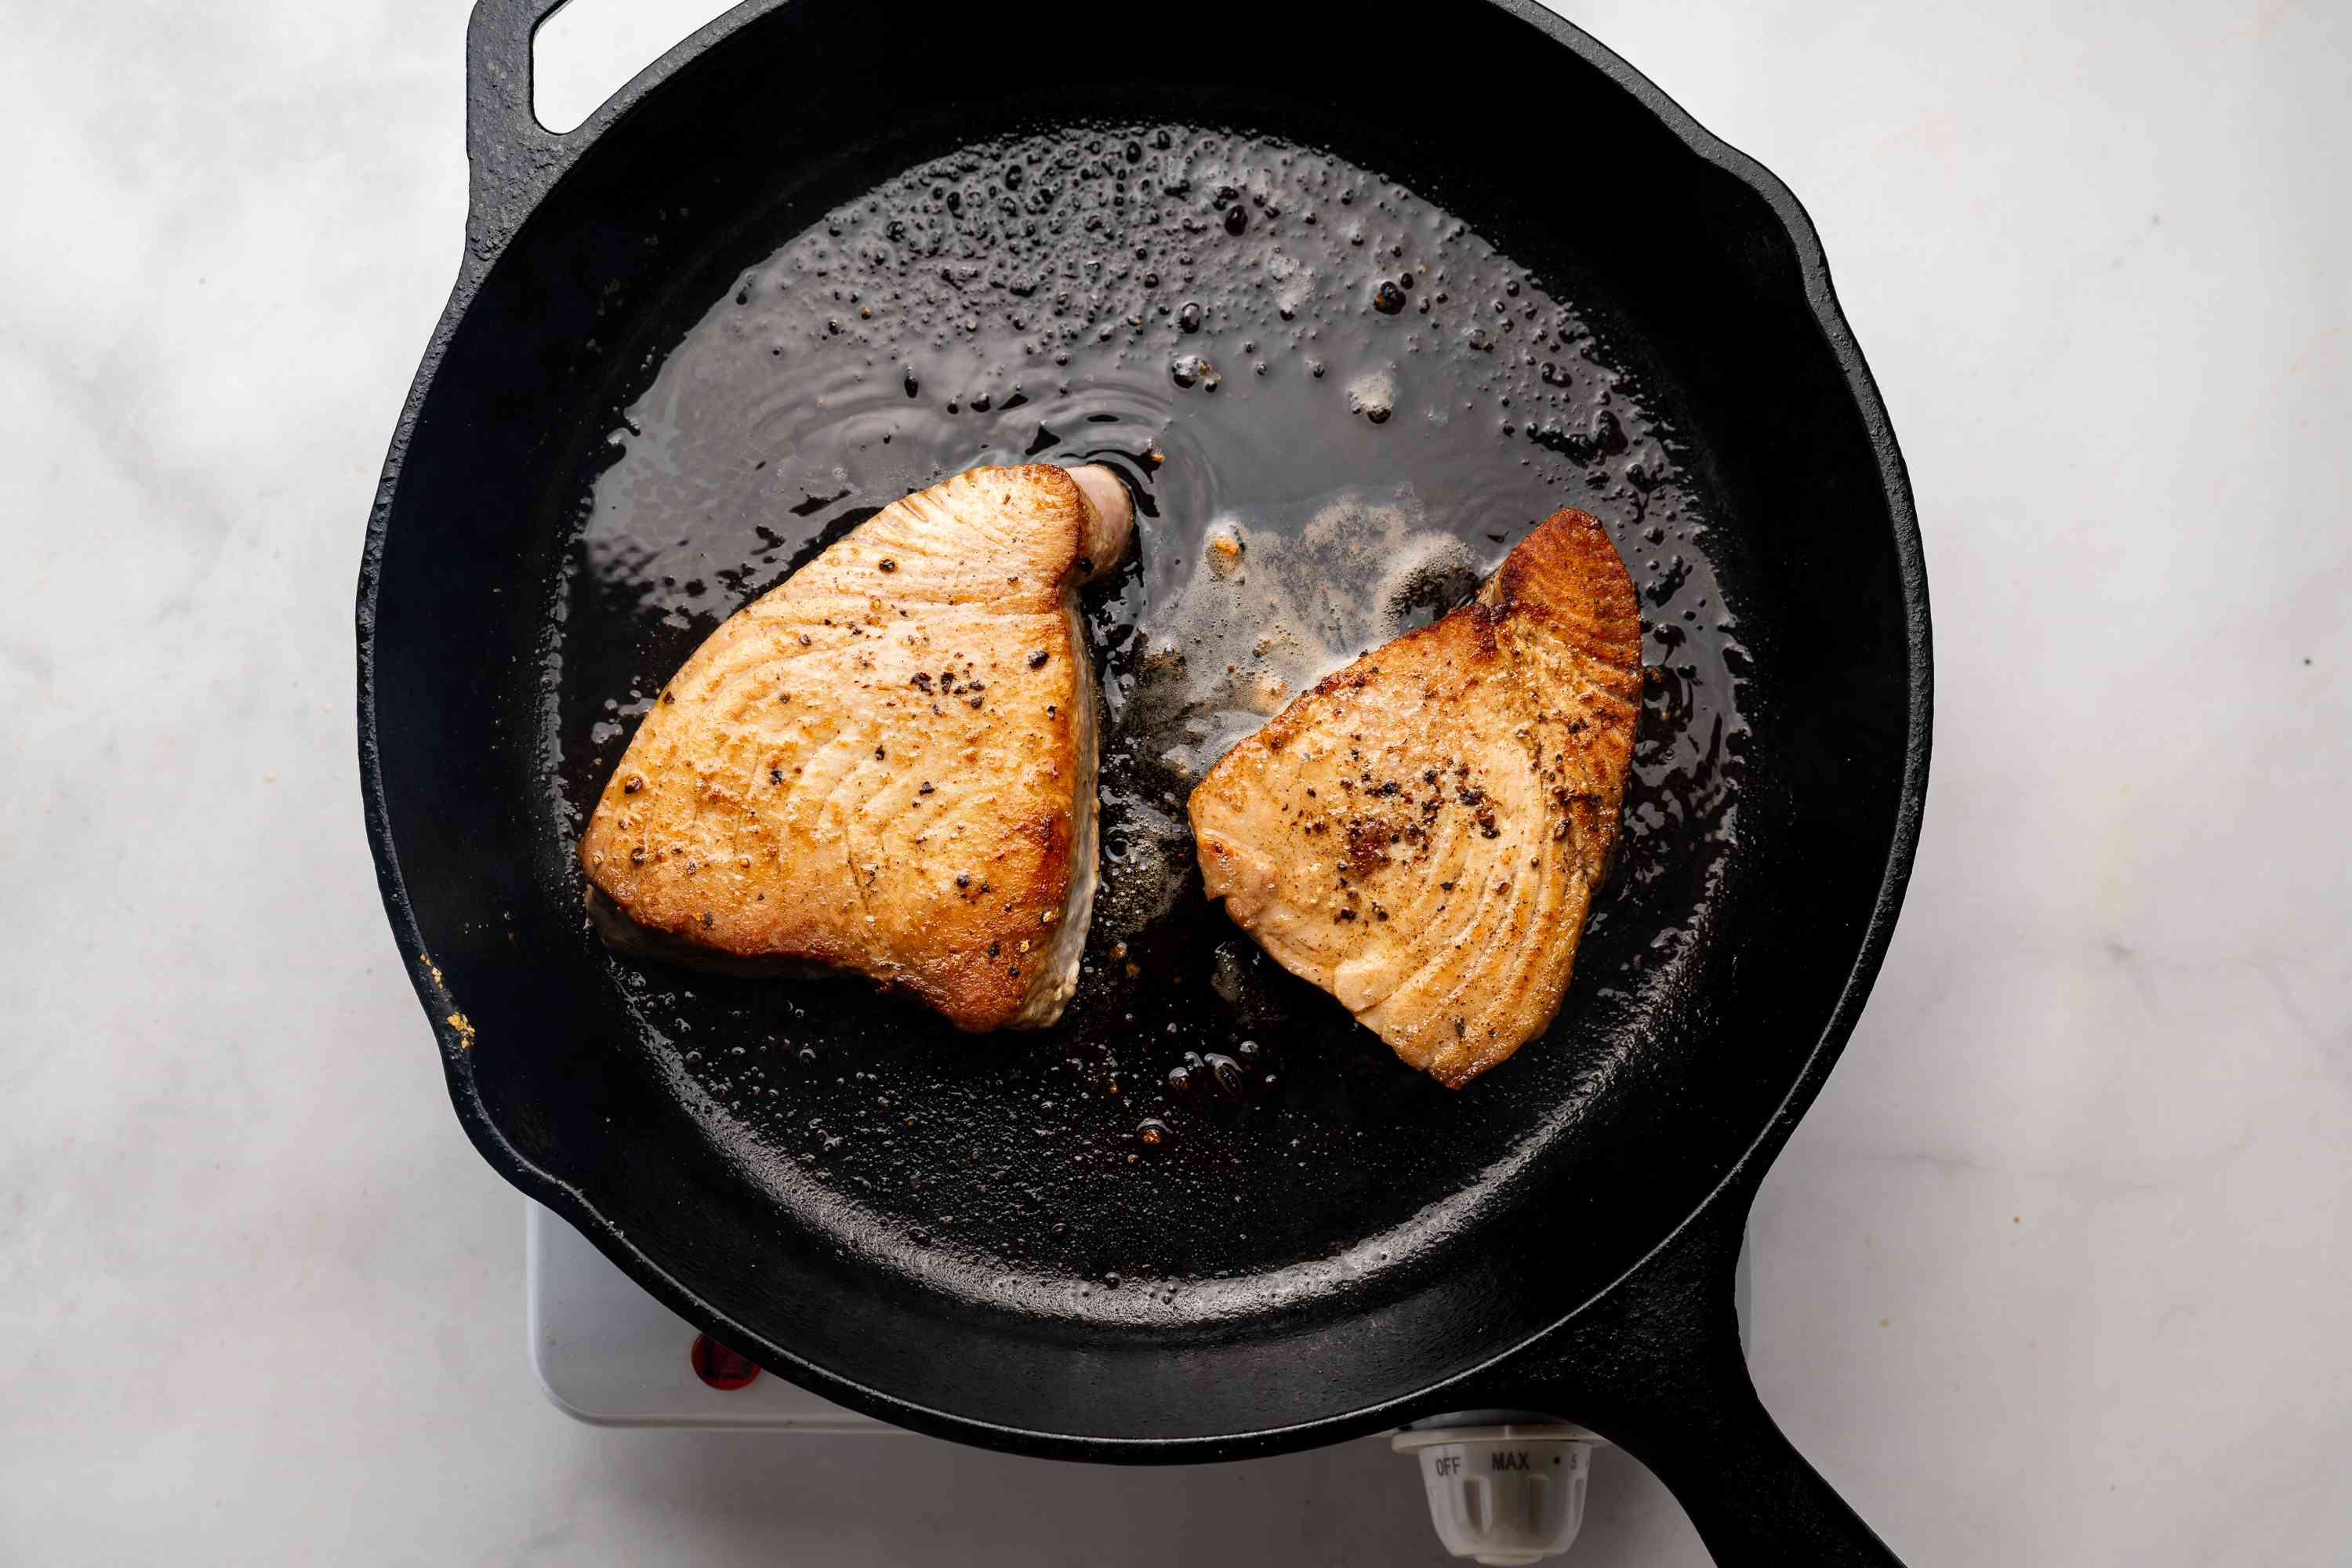 tuna steaks cooking in a skillet